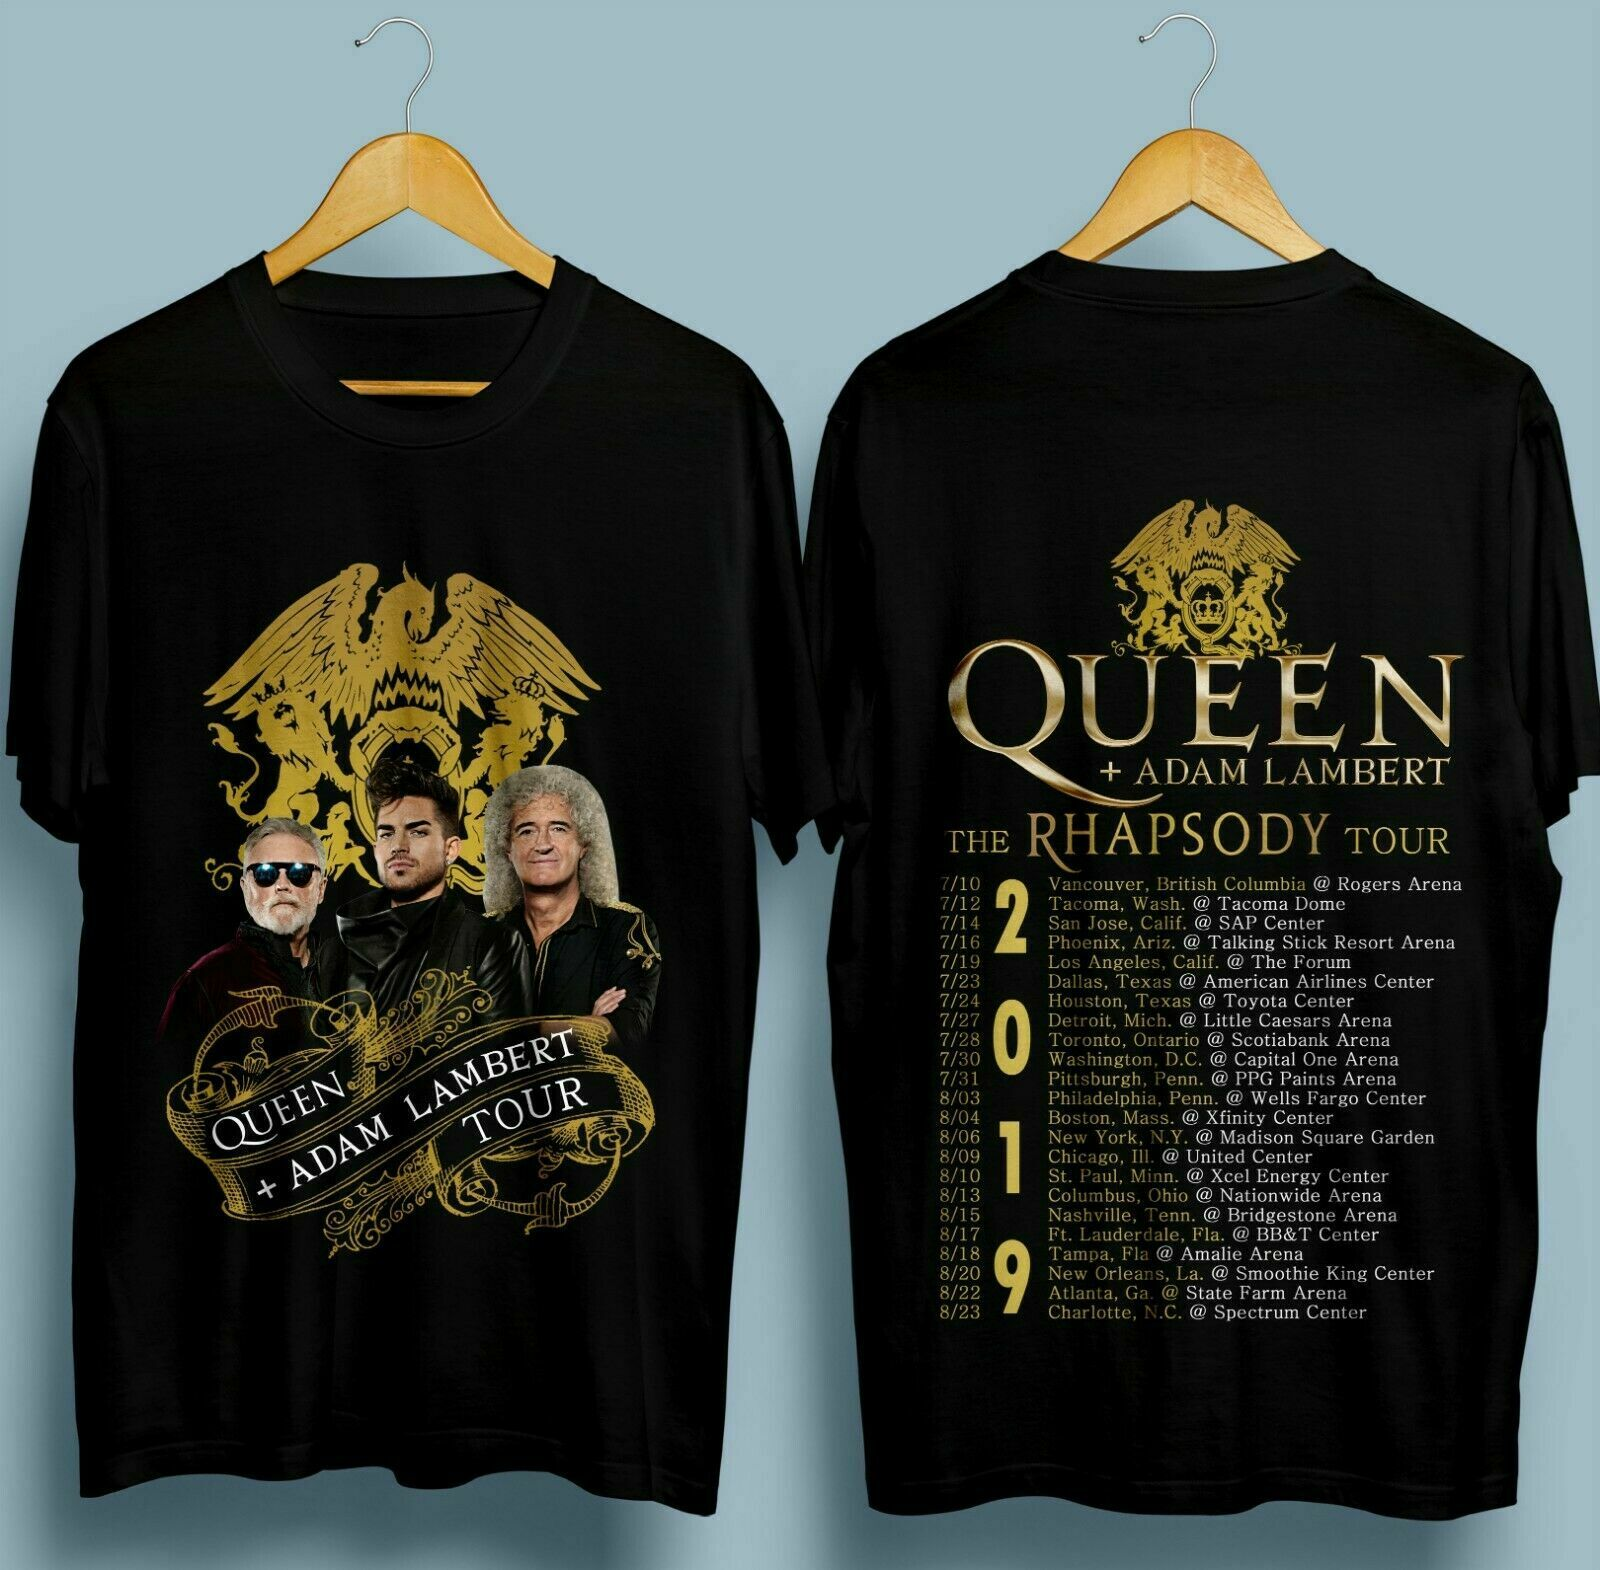 Adam Lambert 2019 Rhapsody Tour Black T-Shirt Size S M L XL 2XL 3XL Queen